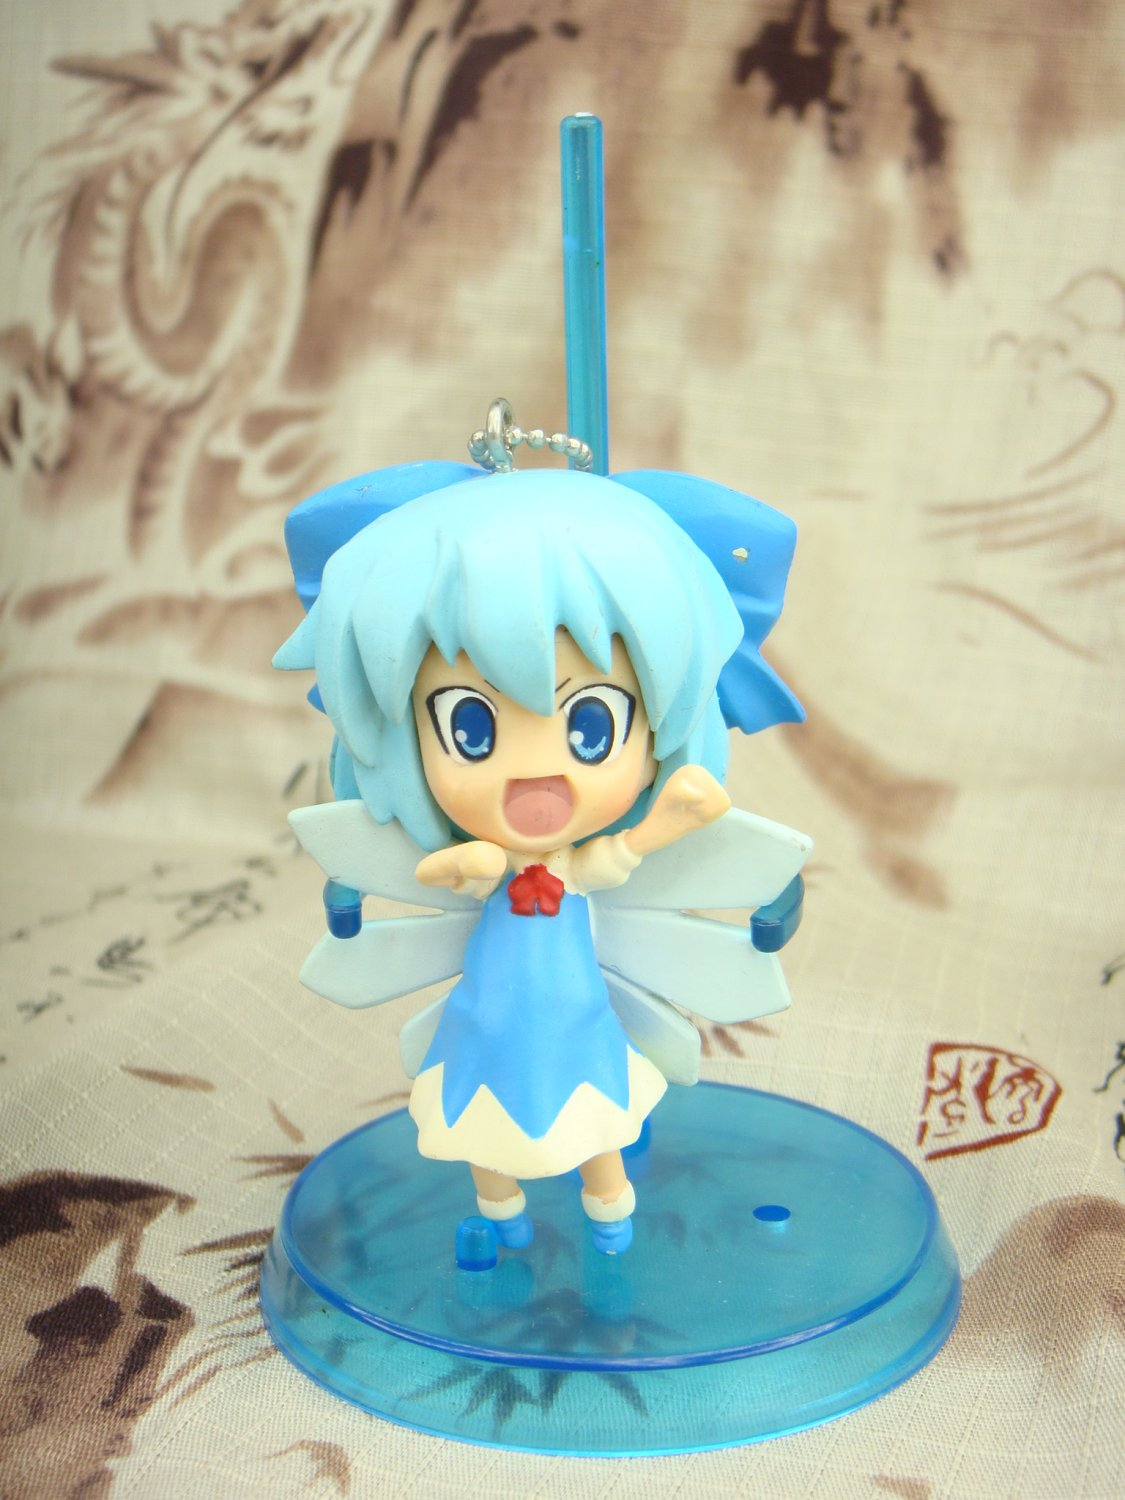 Japanese Pink Company Touhou Project Vol.1 Cirno Eyes Open Figure Phone Charm Strap Keychain